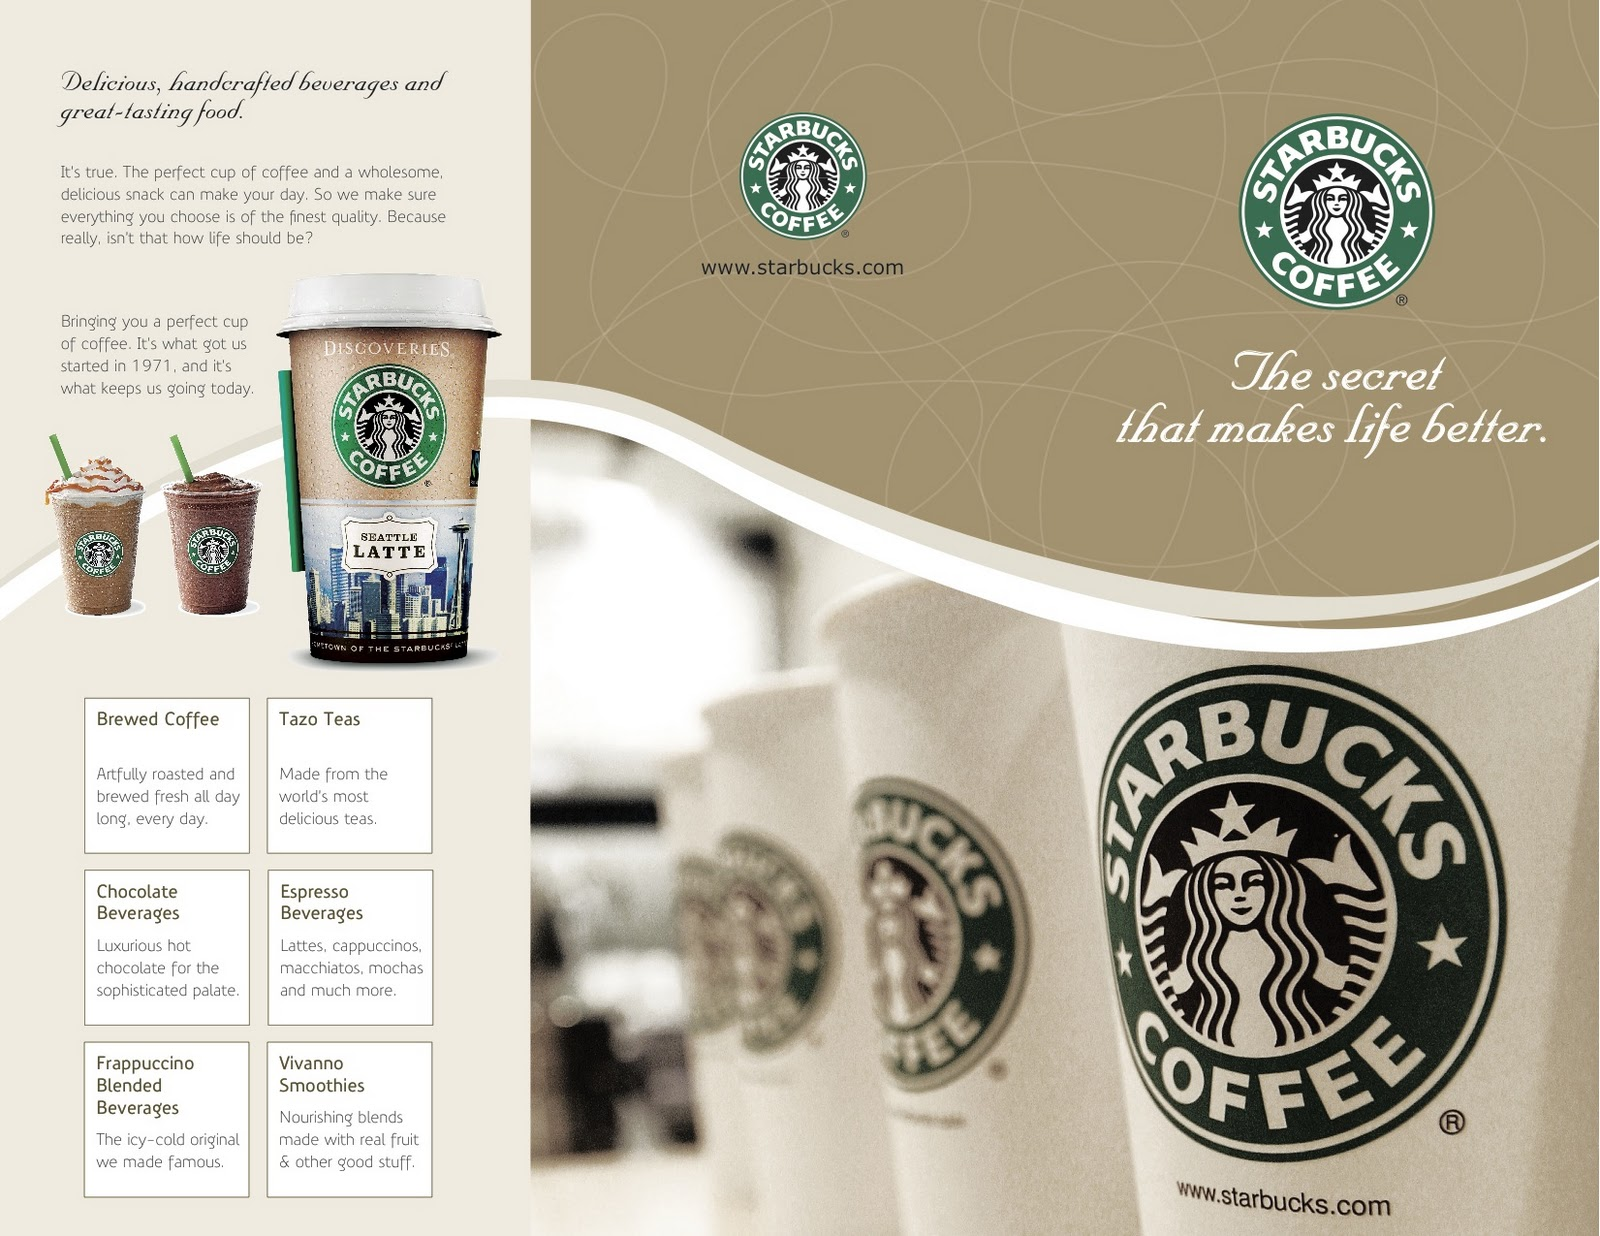 starbucks product mix essay Part a: describe 3 worthwhile (existing or new) consumer segments for your chosen company/product (starbucks), using multiple segmentation variables for each segment.